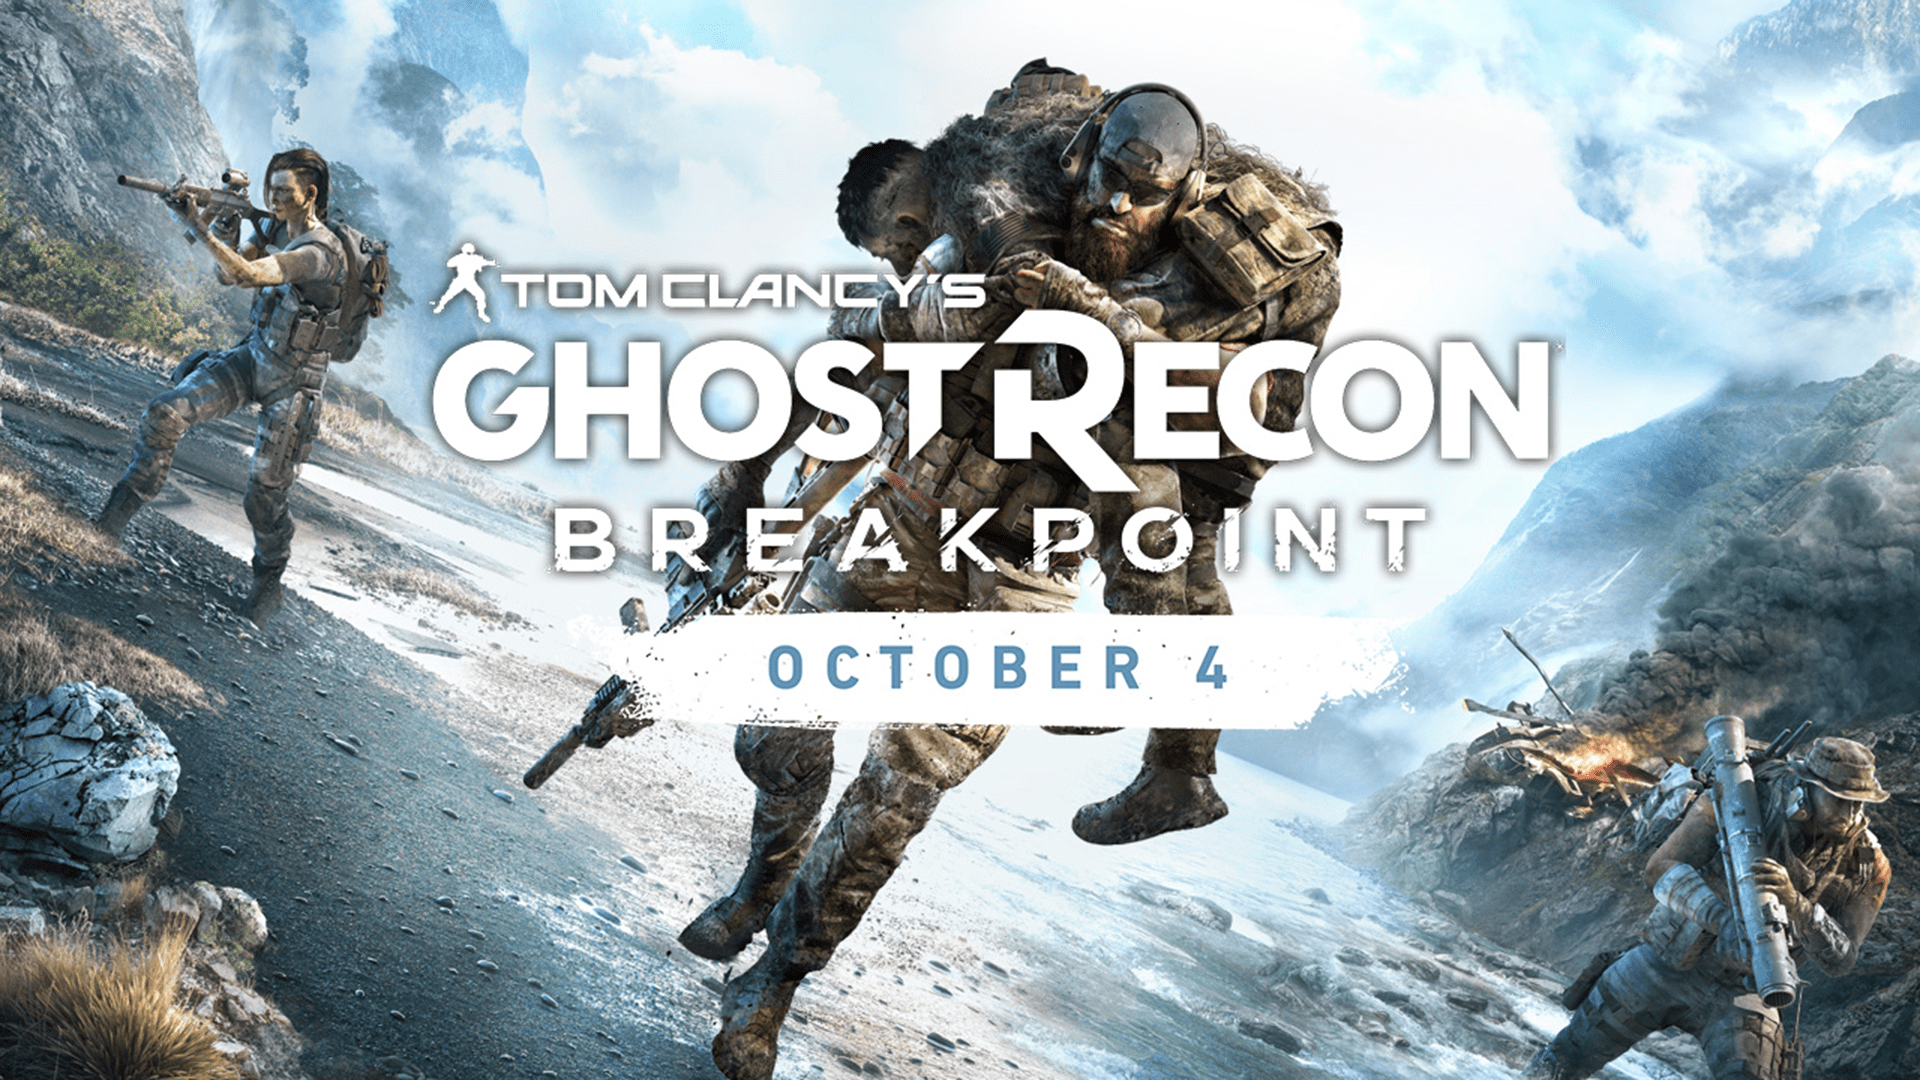 Ghost Recon Breakpoint's Online Game Servers Break Down On The Same Day As Its Official Launch